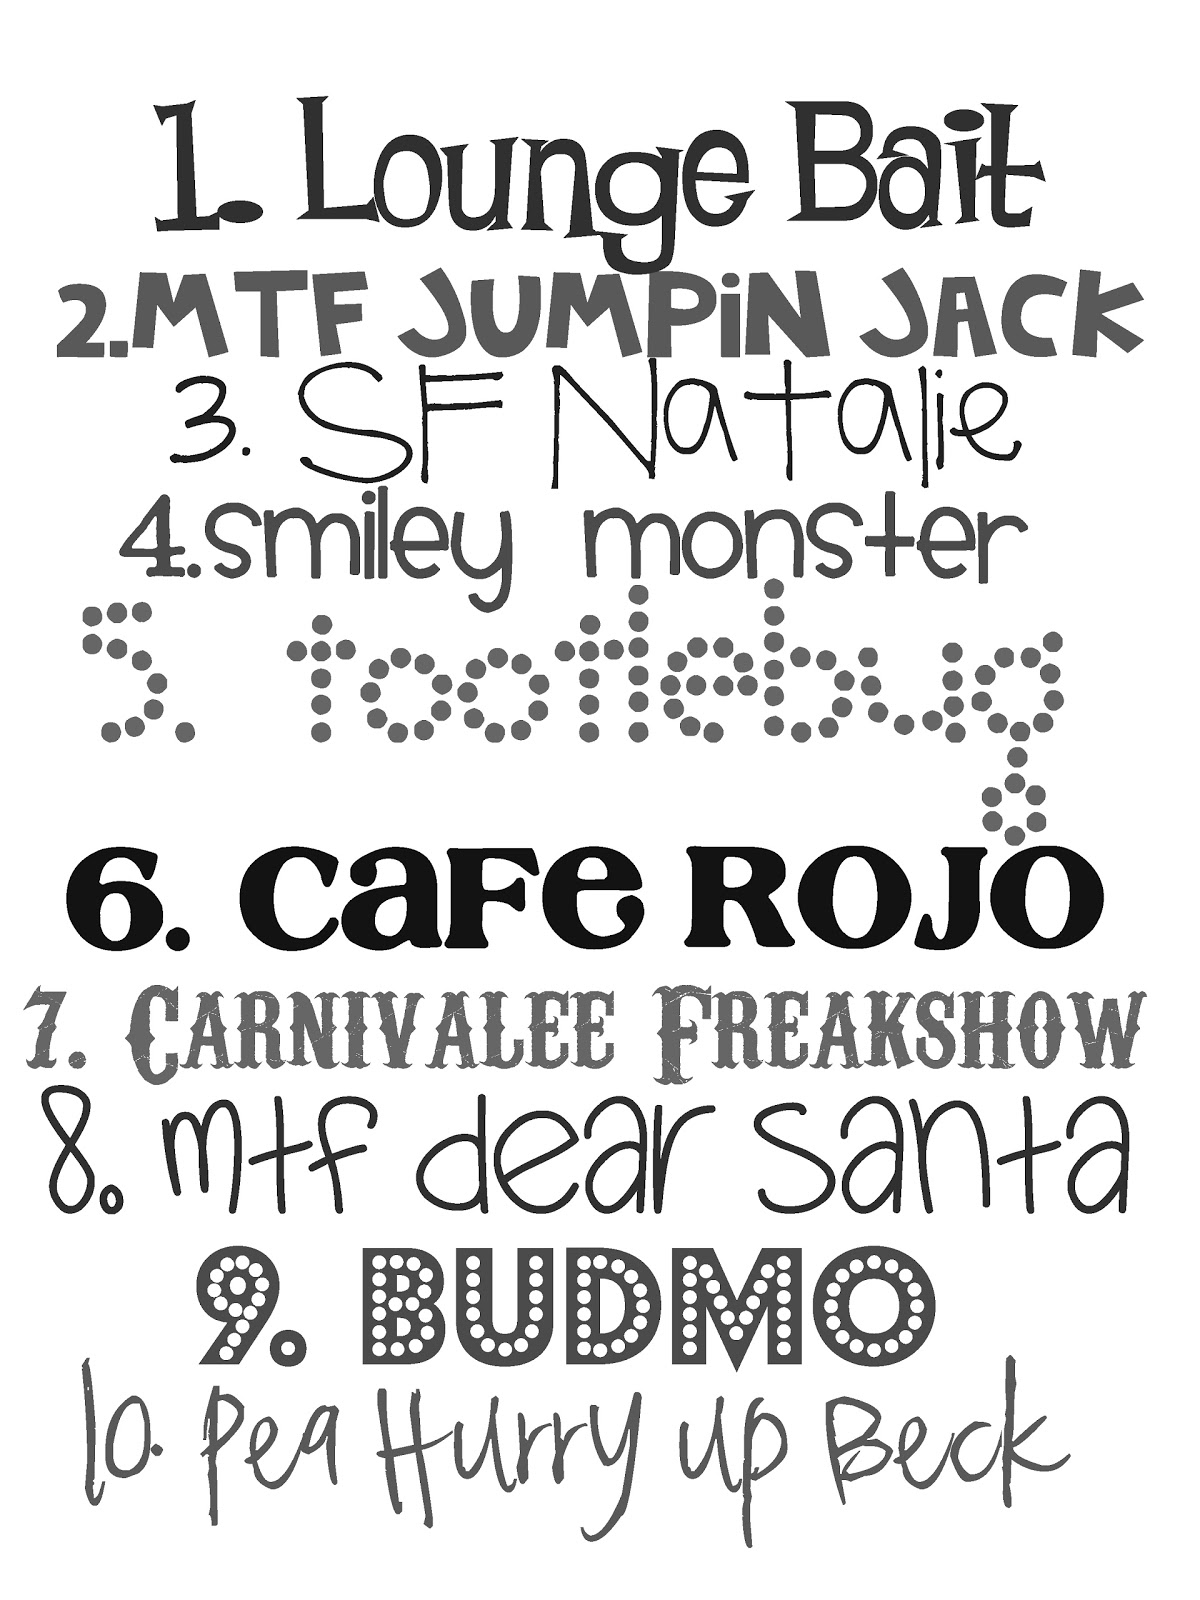 fonts font fun favorite kid cute take word copy street cool sesame funky dafont text natalie rojo cafe party jack